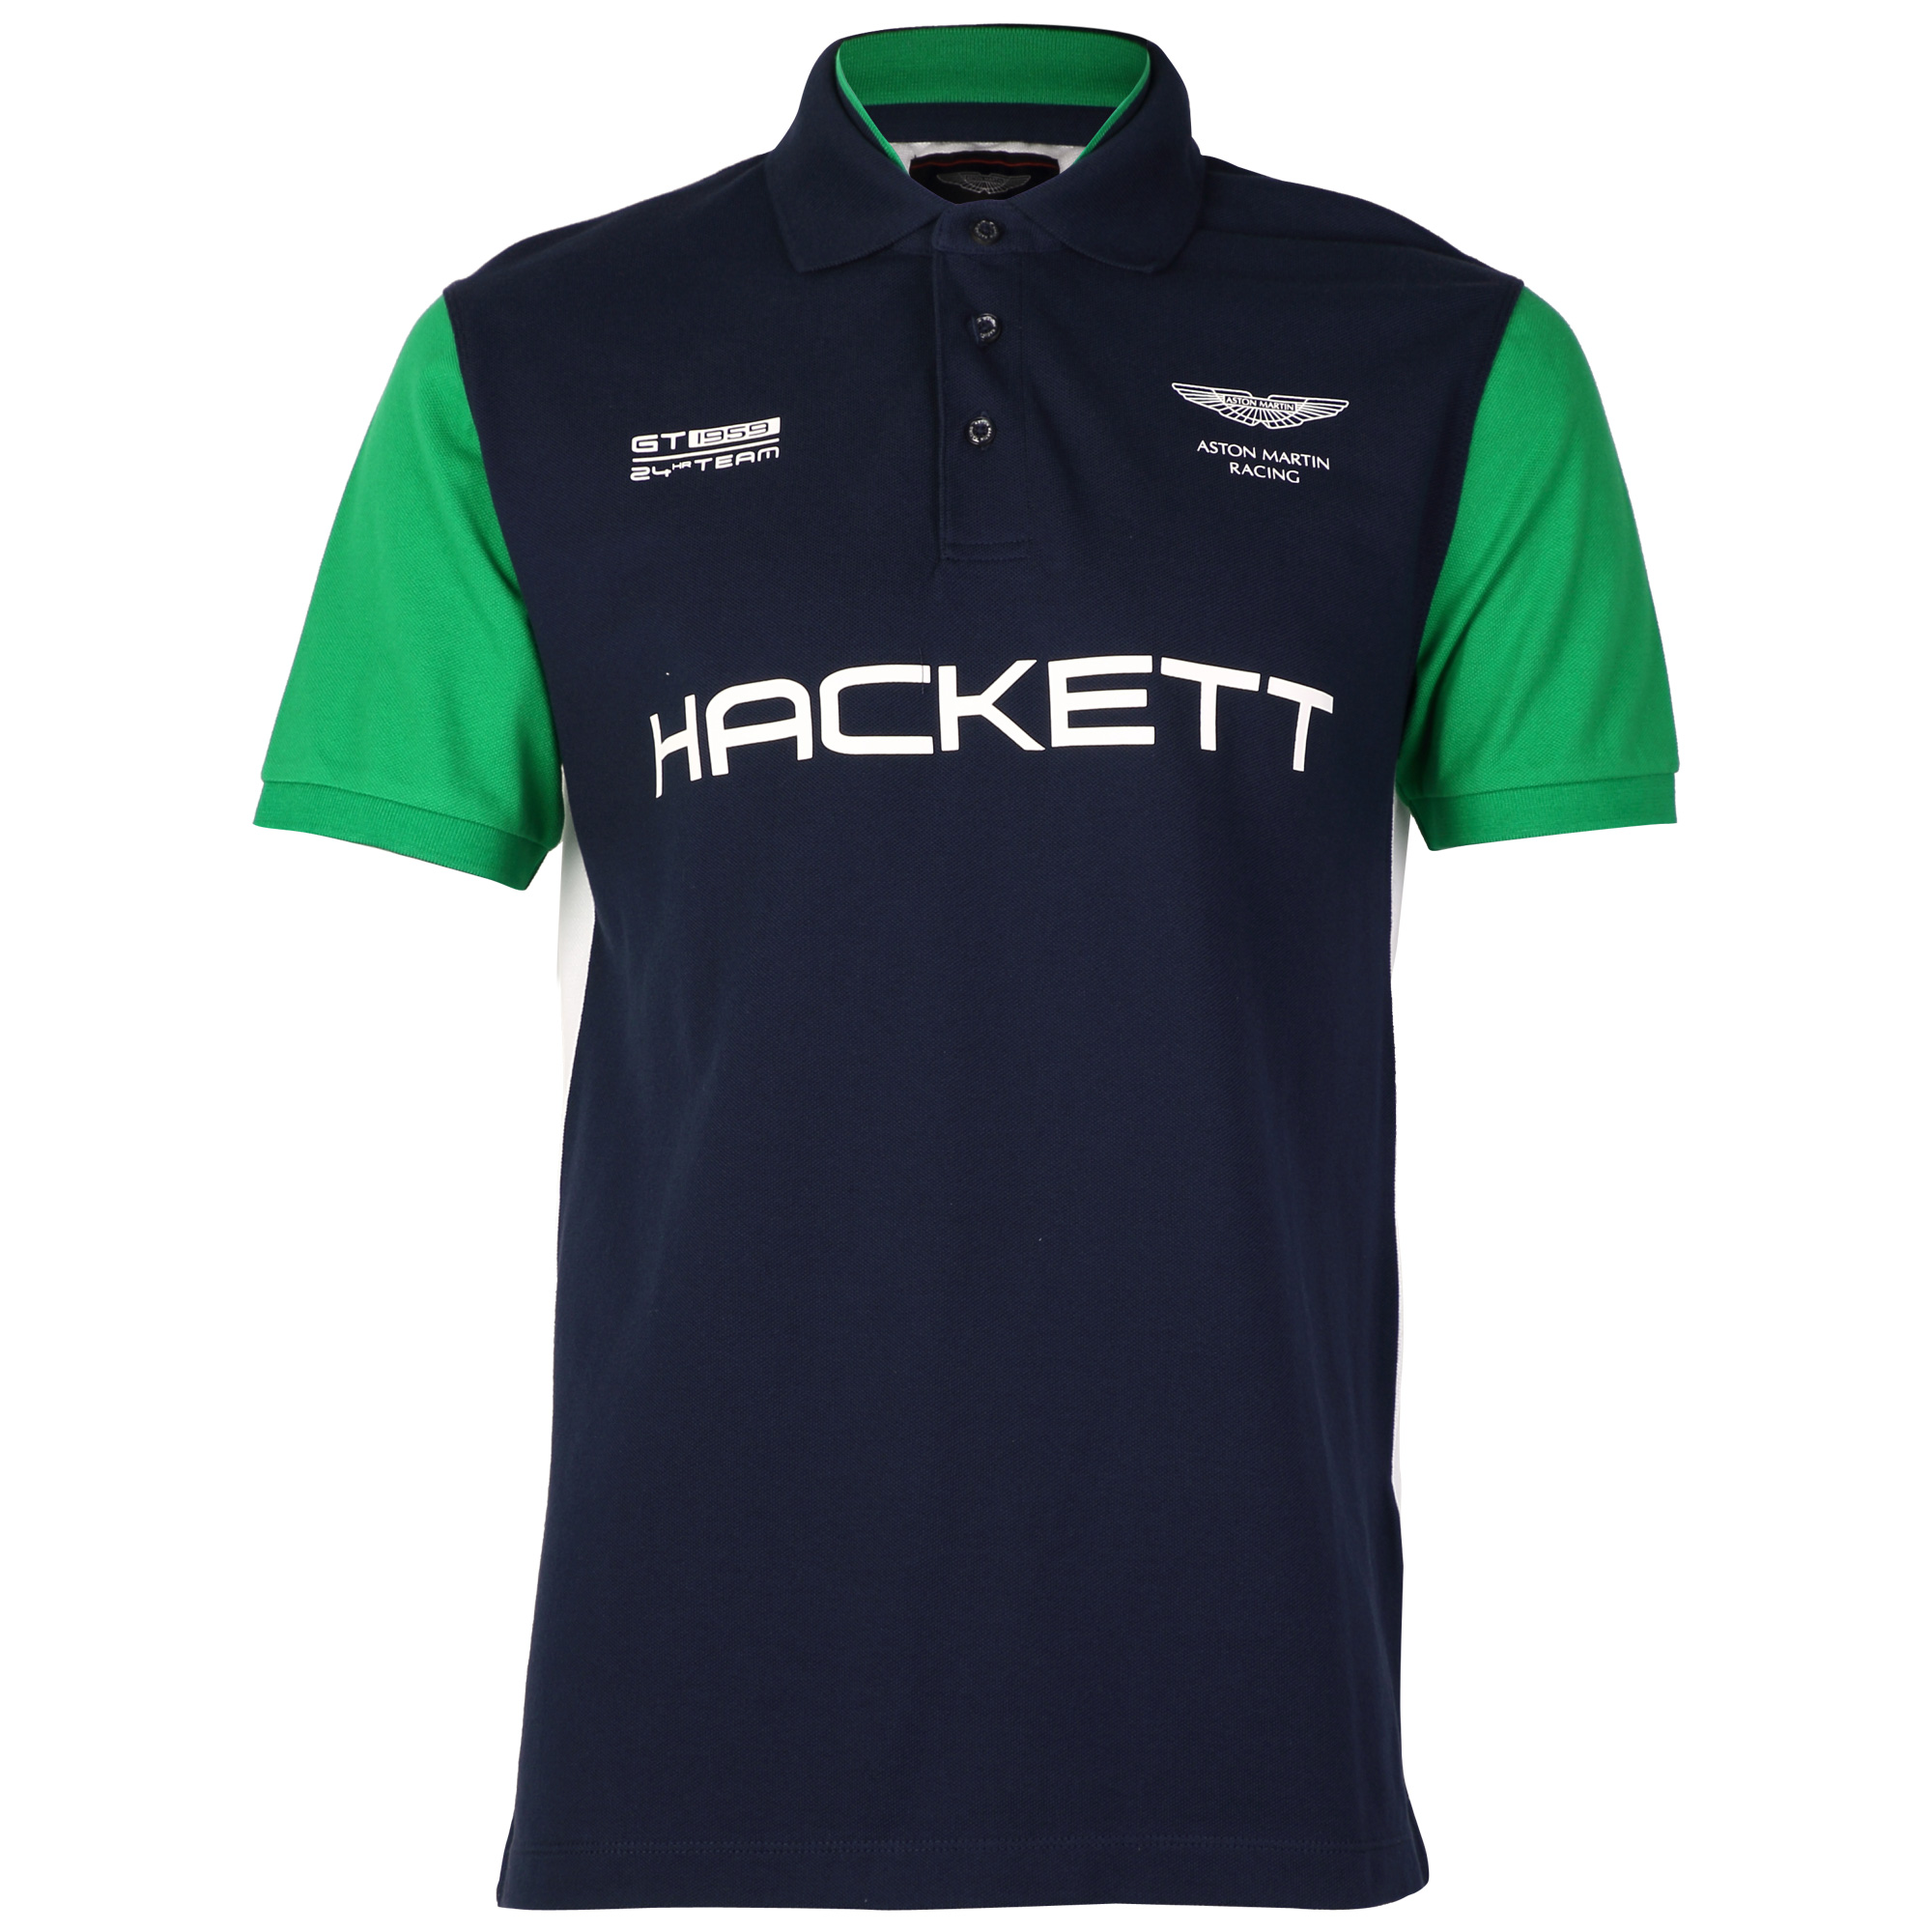 hackett aston martin racing multi mens polo shirt ebay. Black Bedroom Furniture Sets. Home Design Ideas